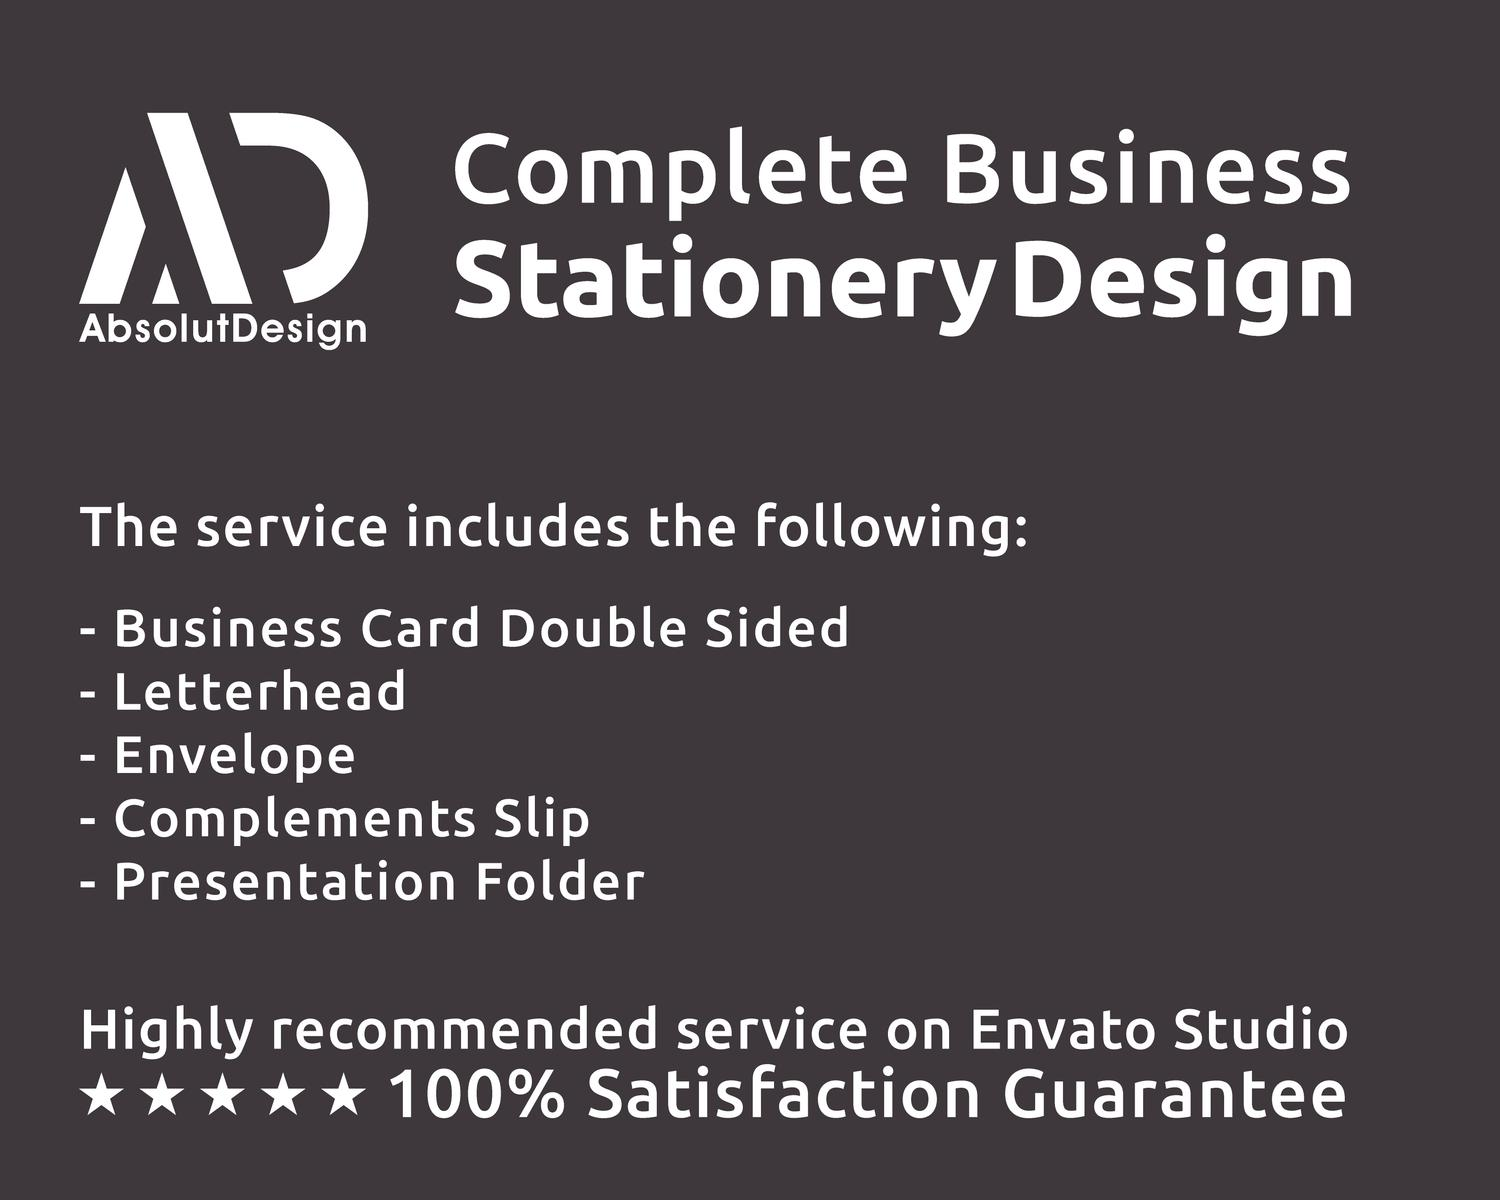 Complete Business Stationery Design by AbsolutDesign - 93615